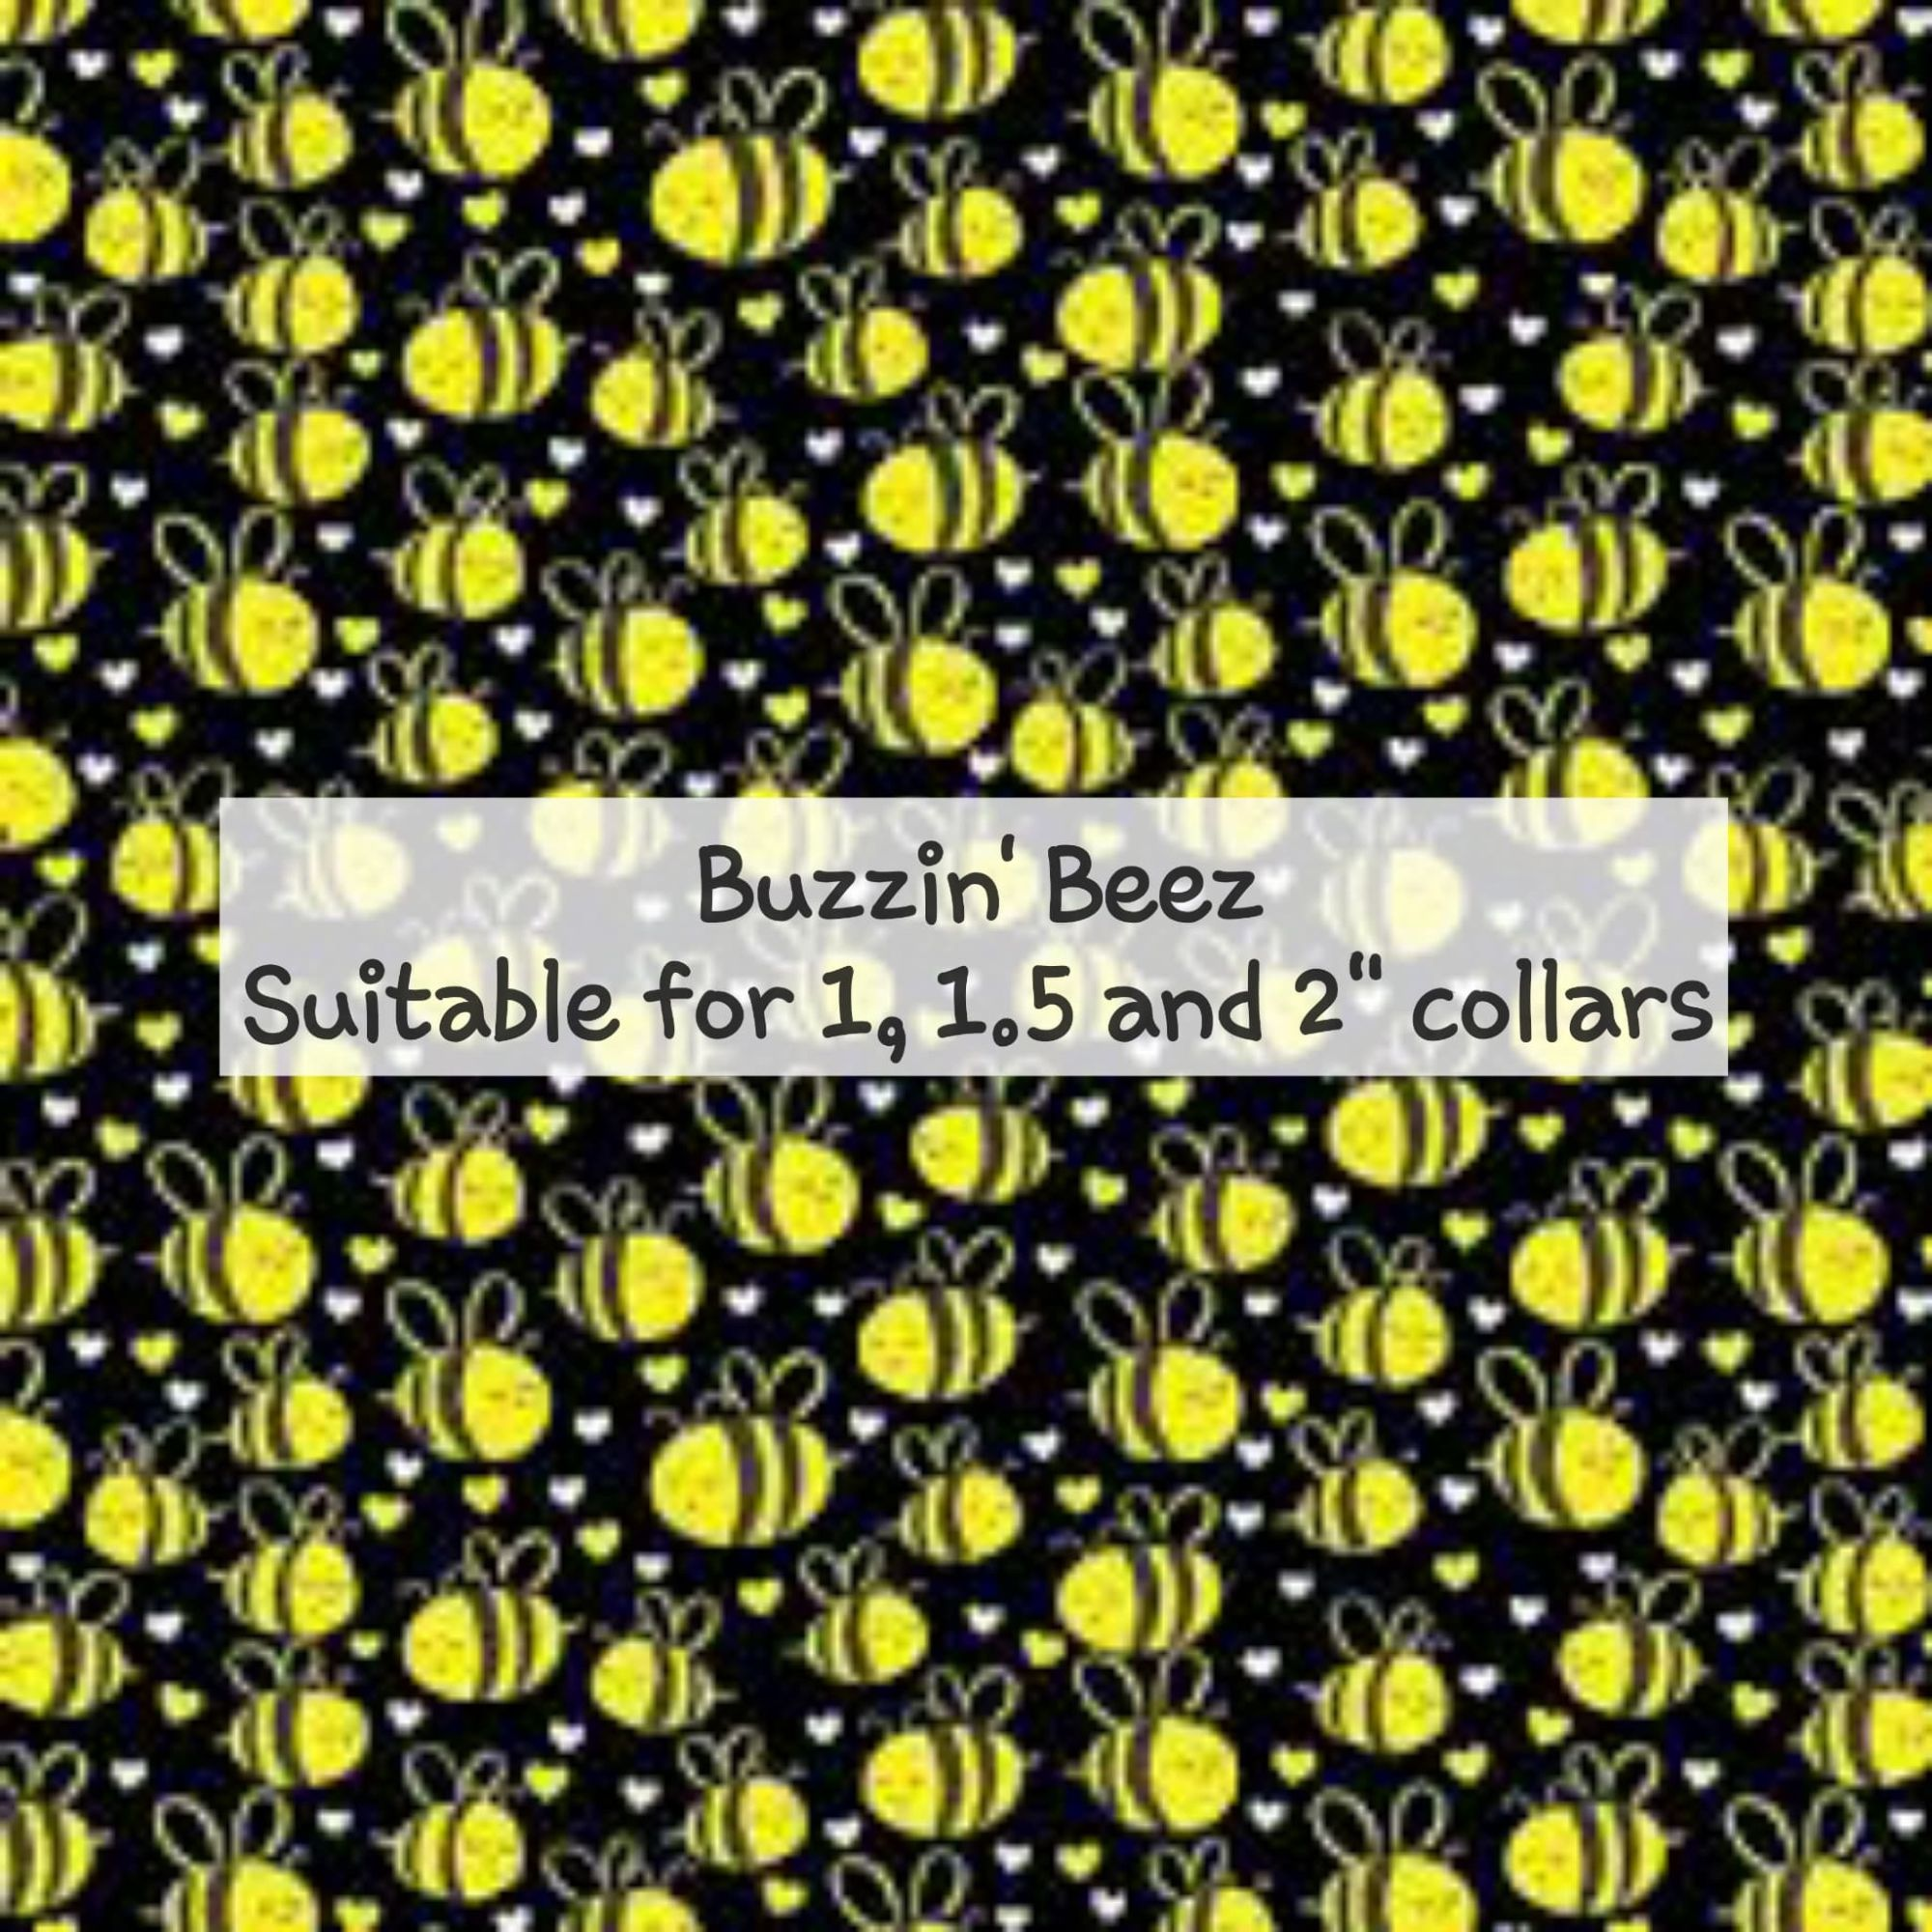 Buzzin' Beez - Suitable for 1, 1.5 and 2 inch collars